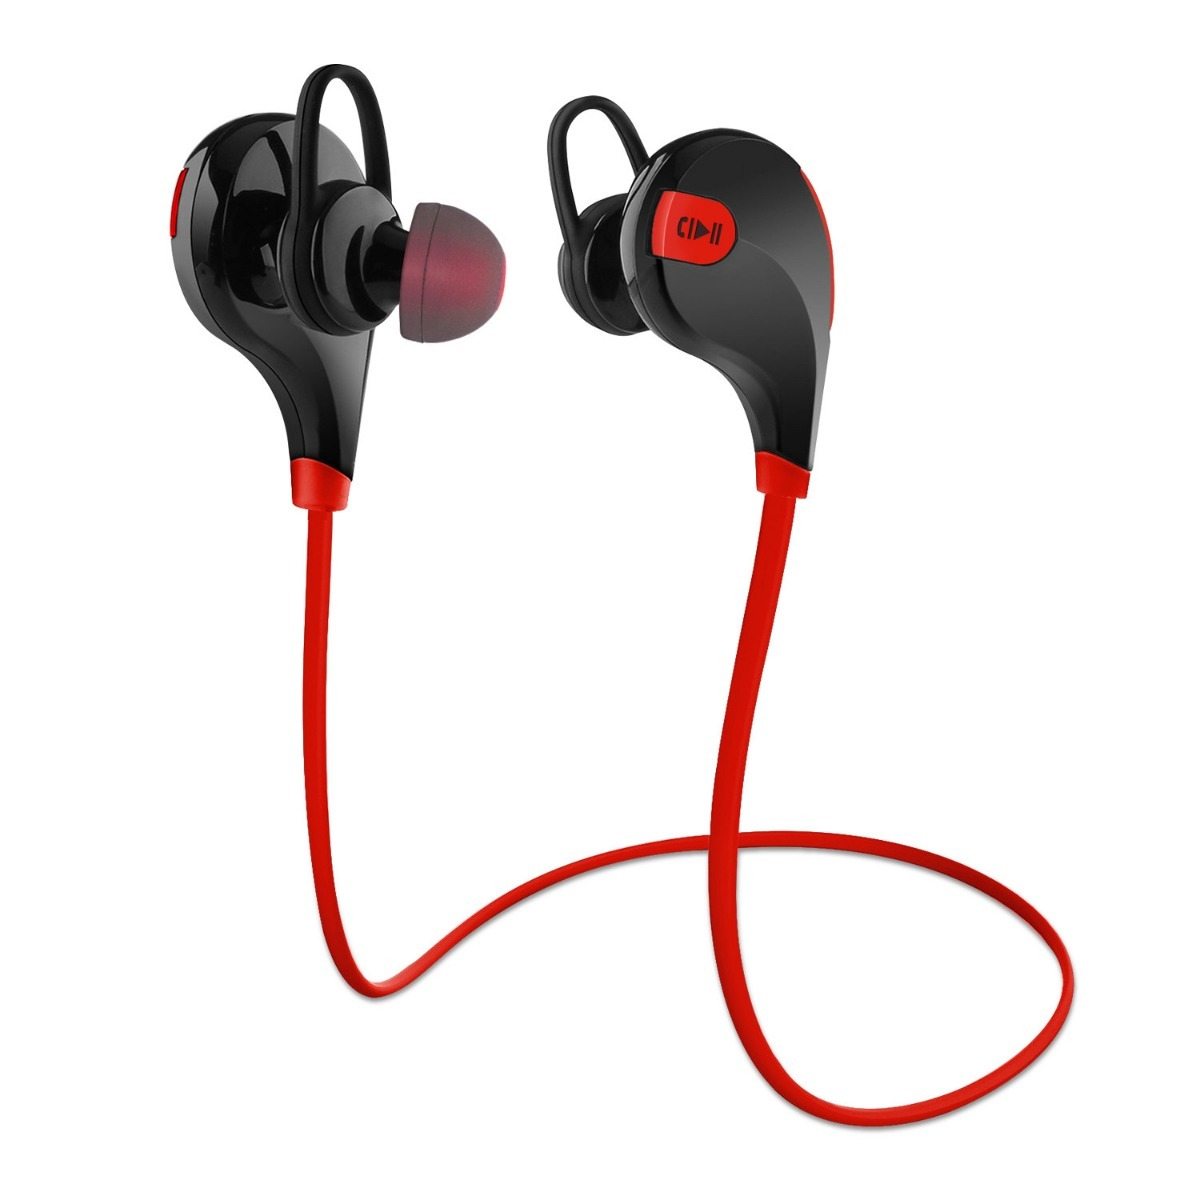 Manos Libres Bluetooth Inalambrico Audifonos Bluetooth Manos Libres Varios Colores